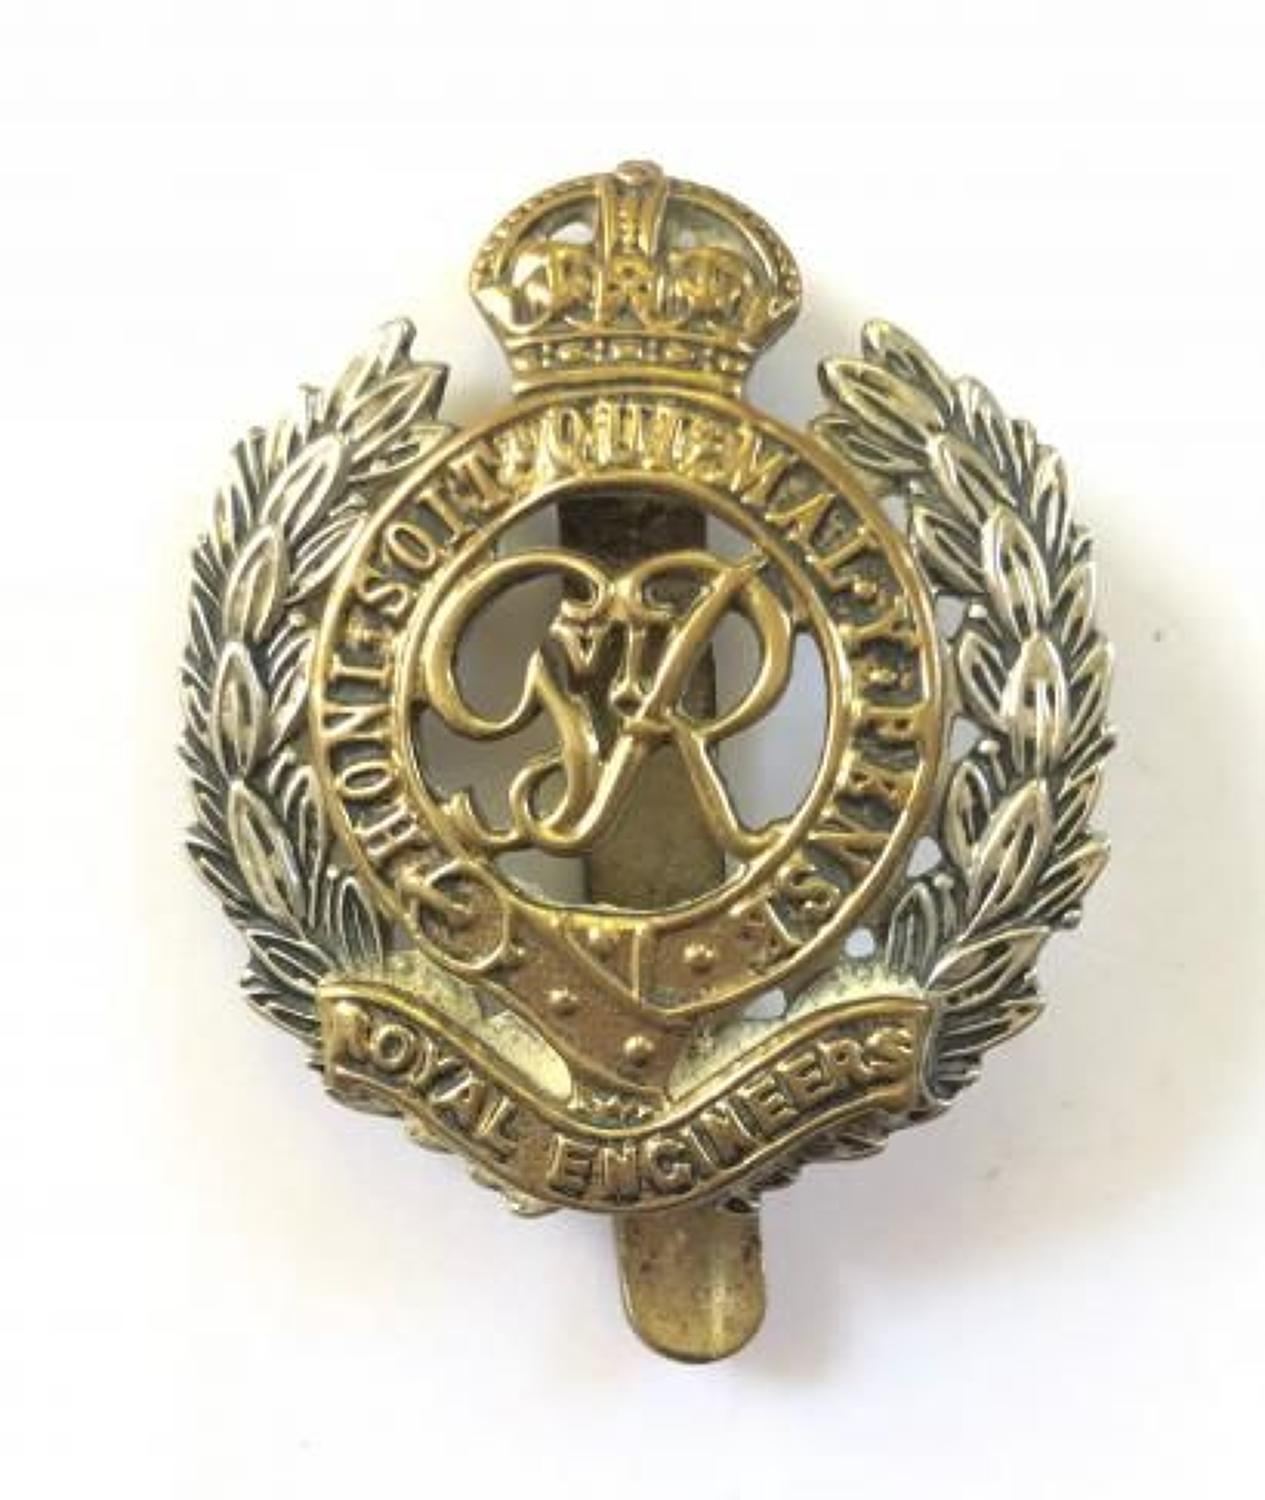 George VI Royal Engineers Cap Badge